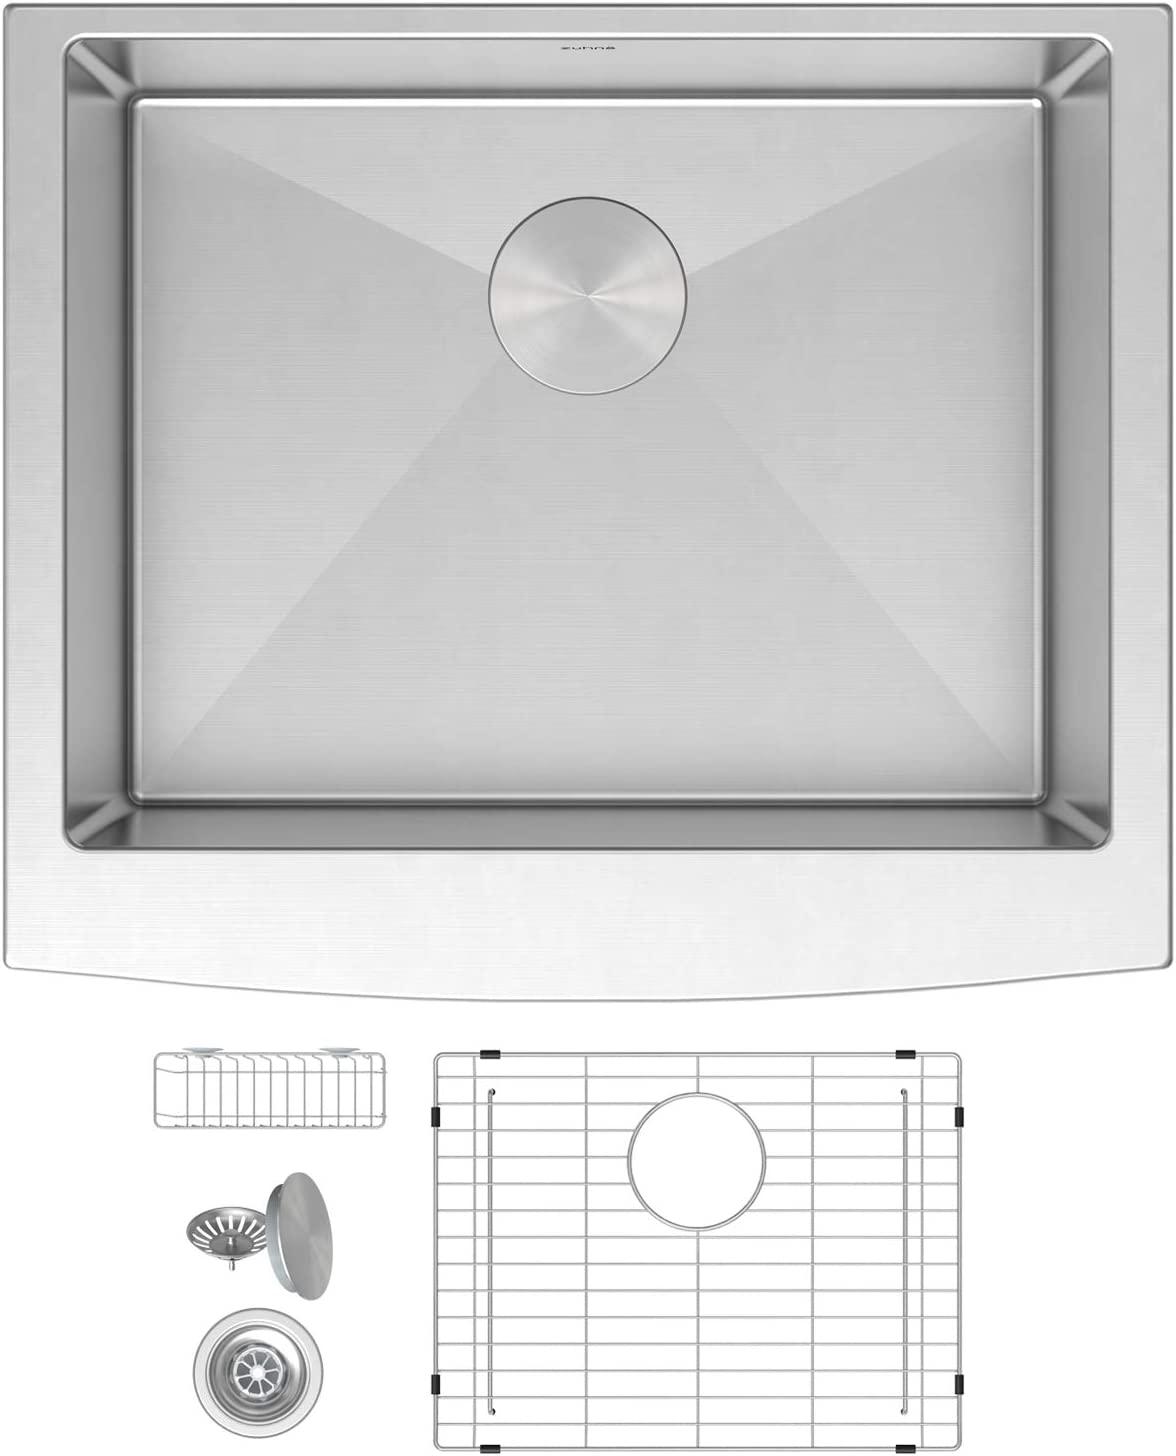 ZUHNE Prato 24 Inch Single Bowl Farm House 16G Stainless Steel Kitchen Sink, Scratch Protector Grid, Caddy and Strainer Curved Tall Apron